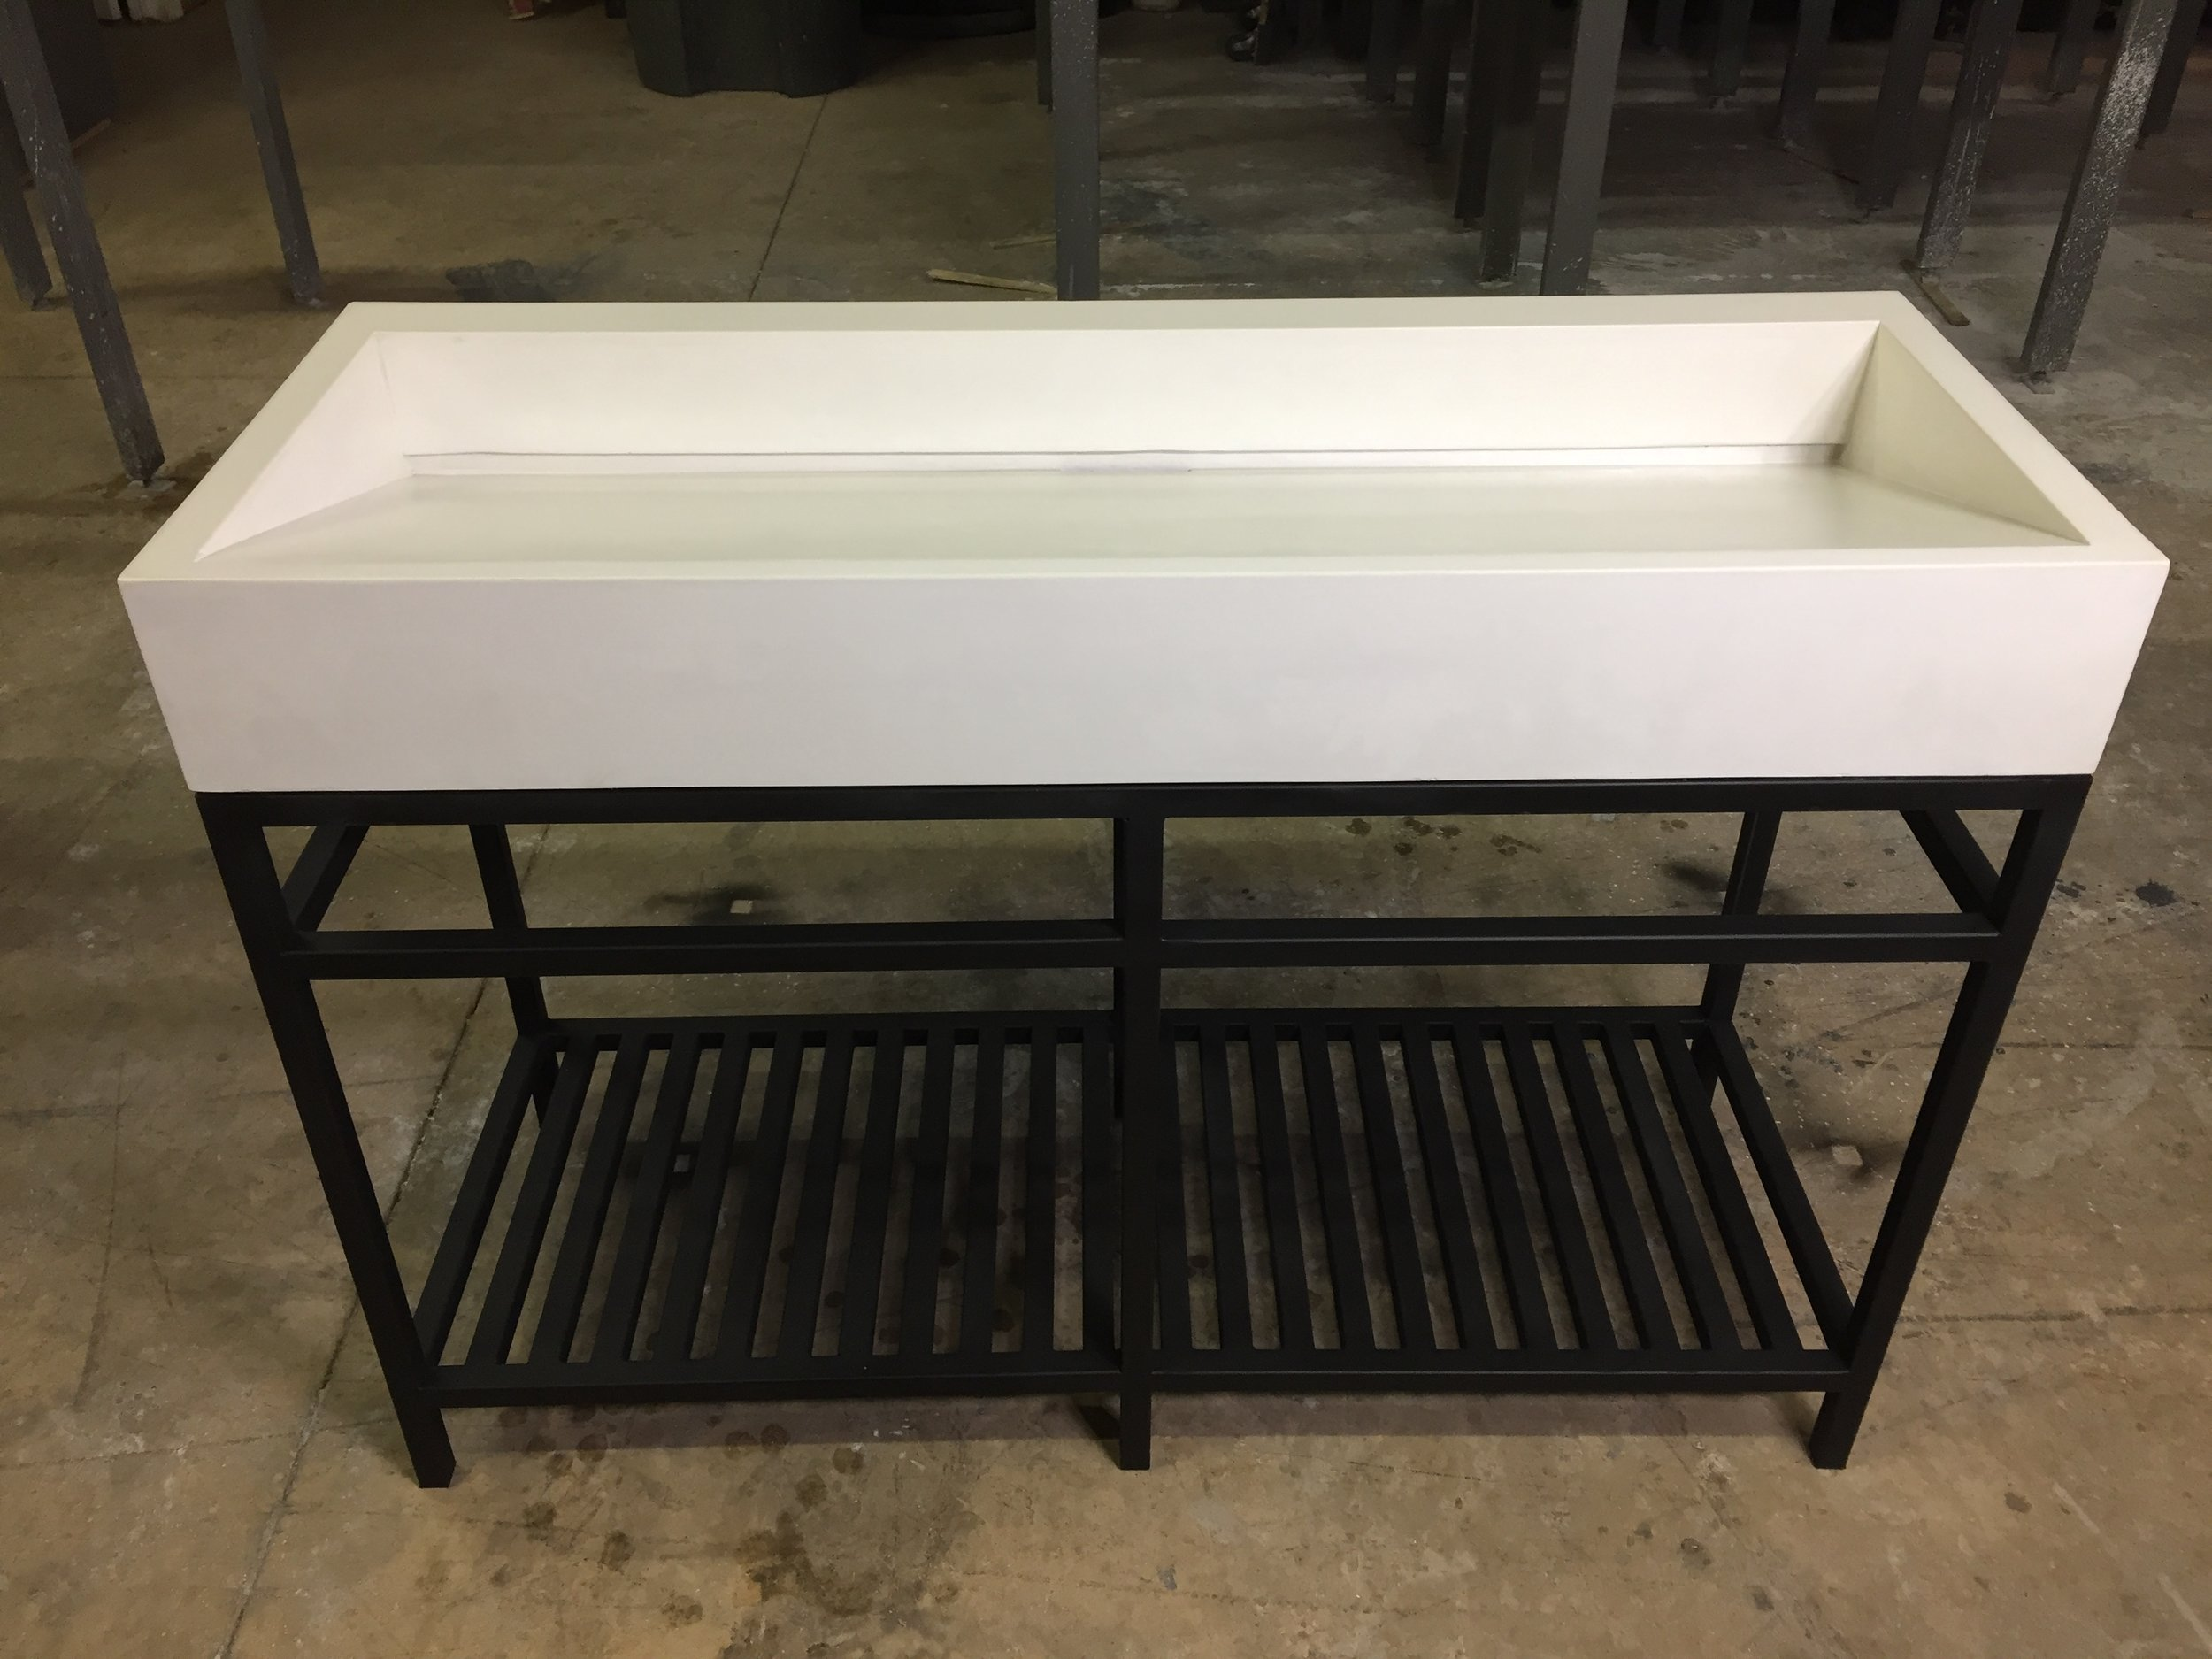 "48"" RAMP SINK ON STEEL BASE"